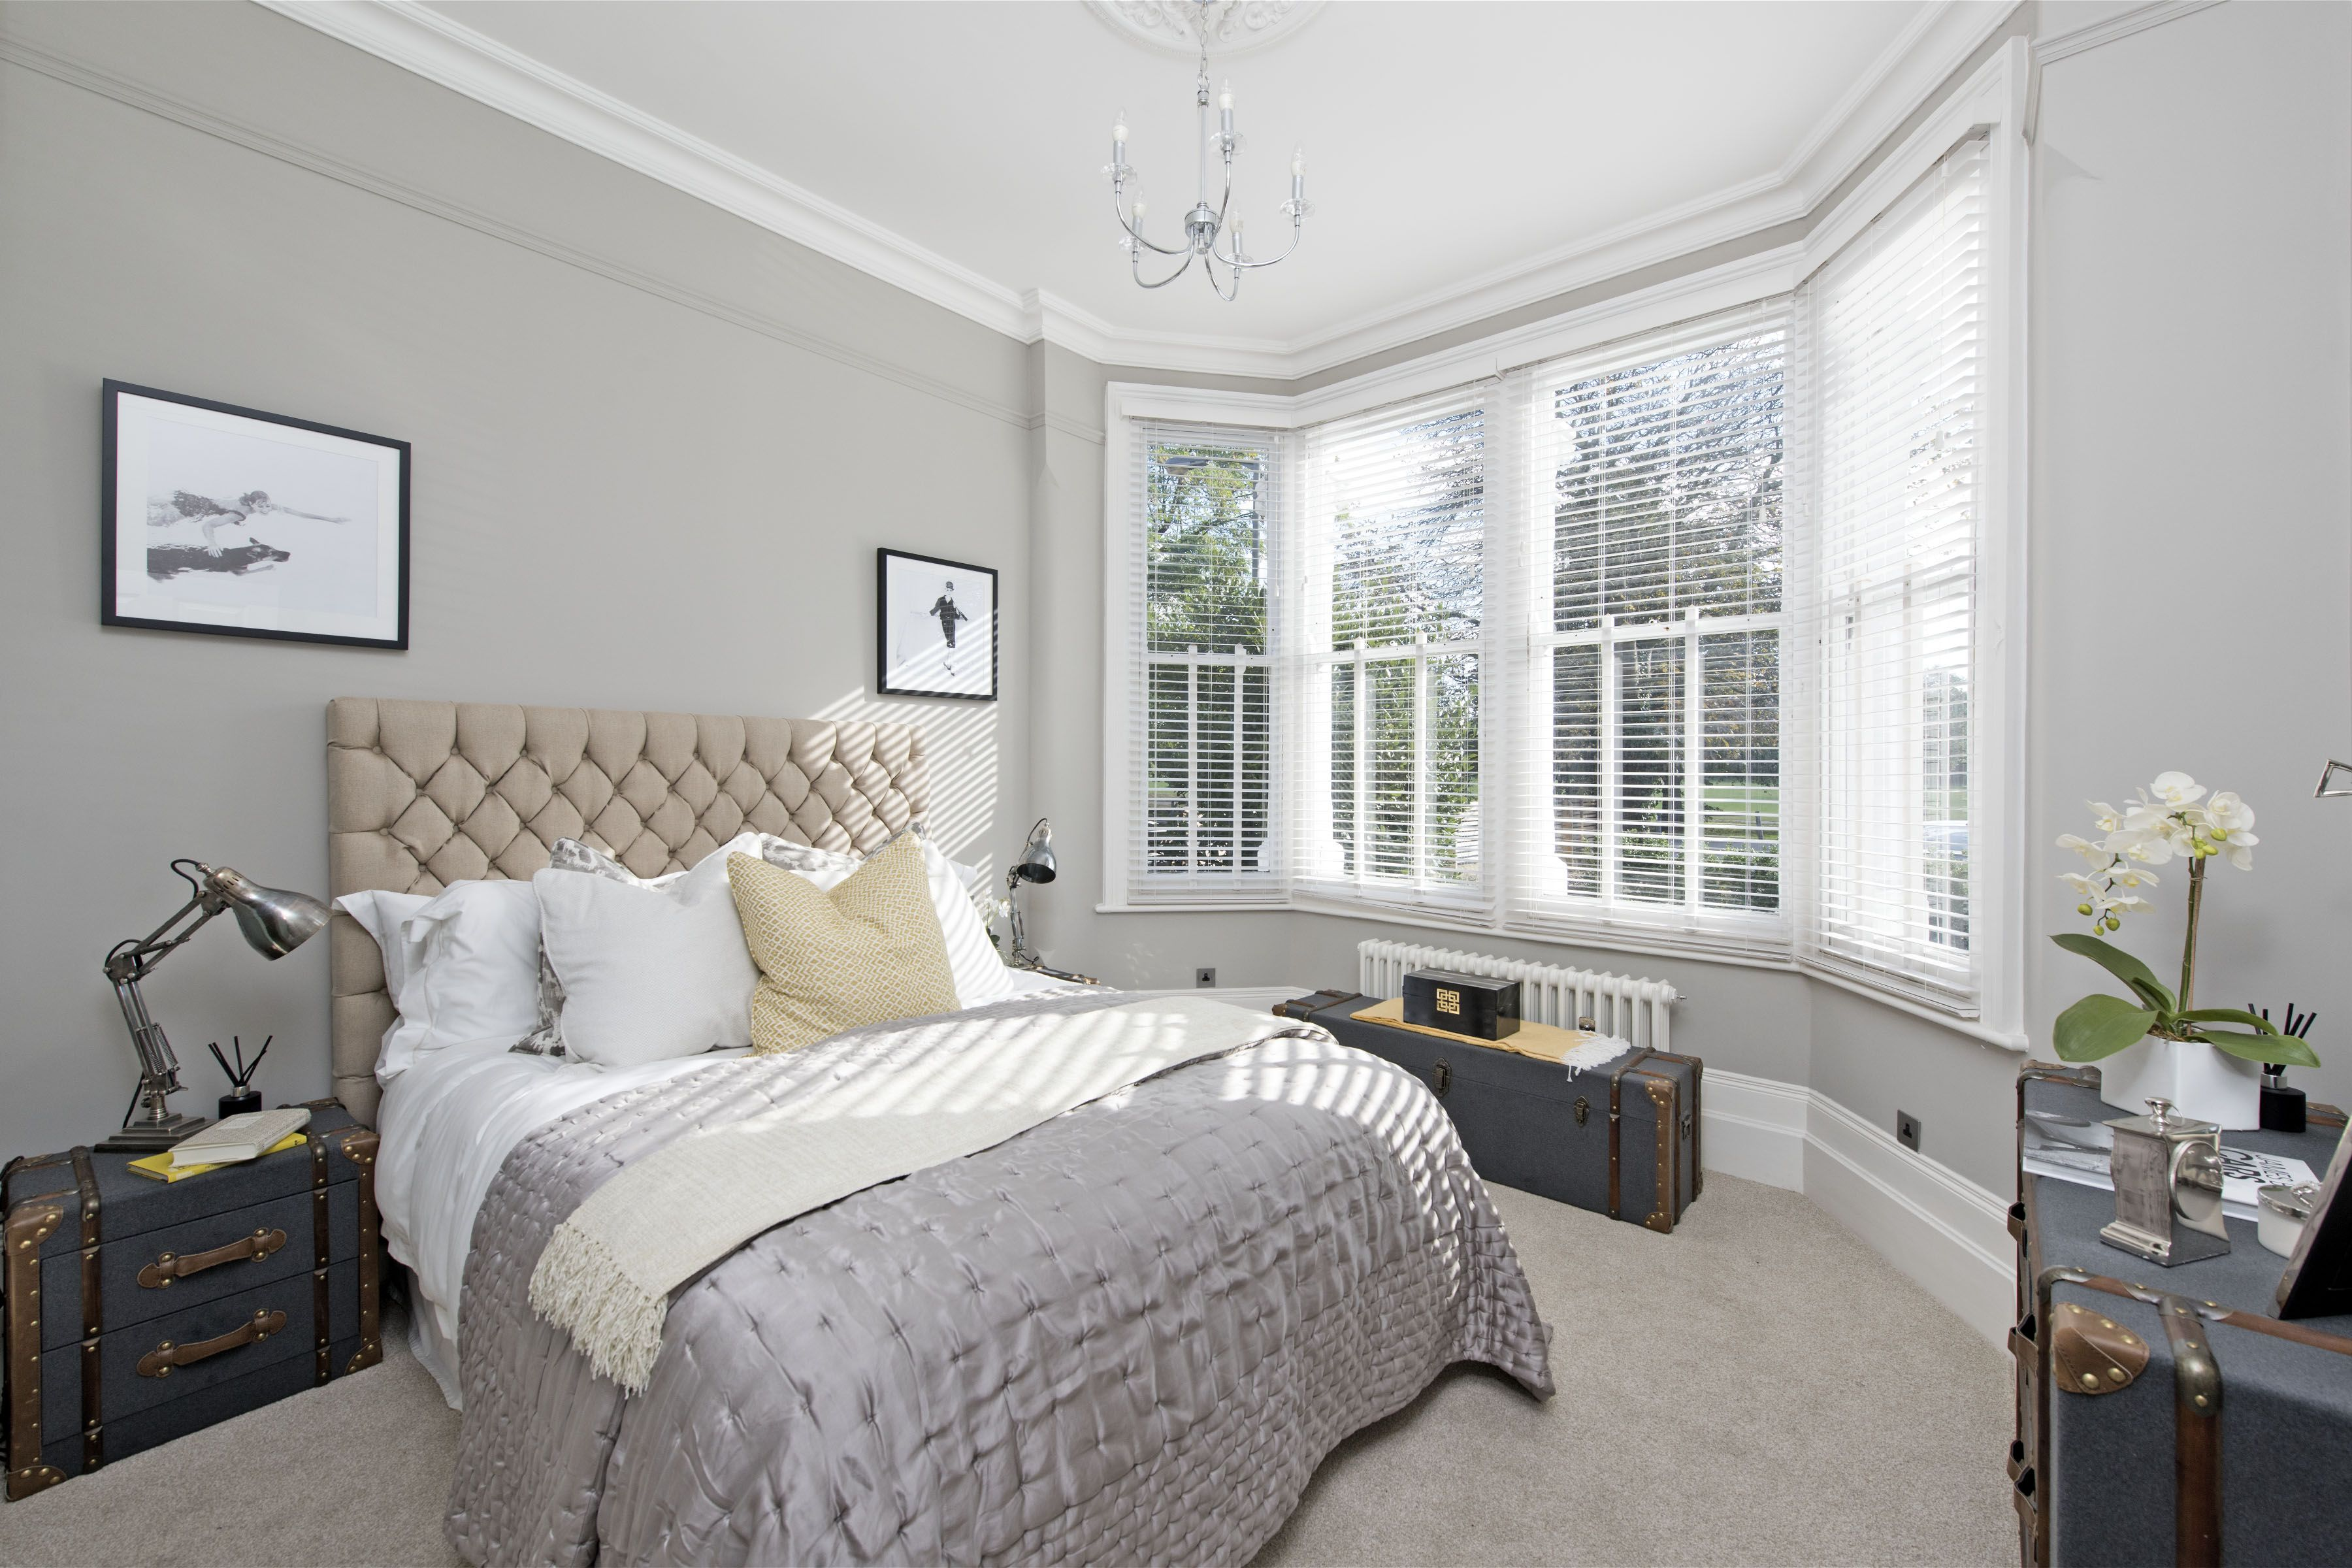 Ccns Project Master Bedroom Farrow And Ball 275 Purbeck Stone Walls